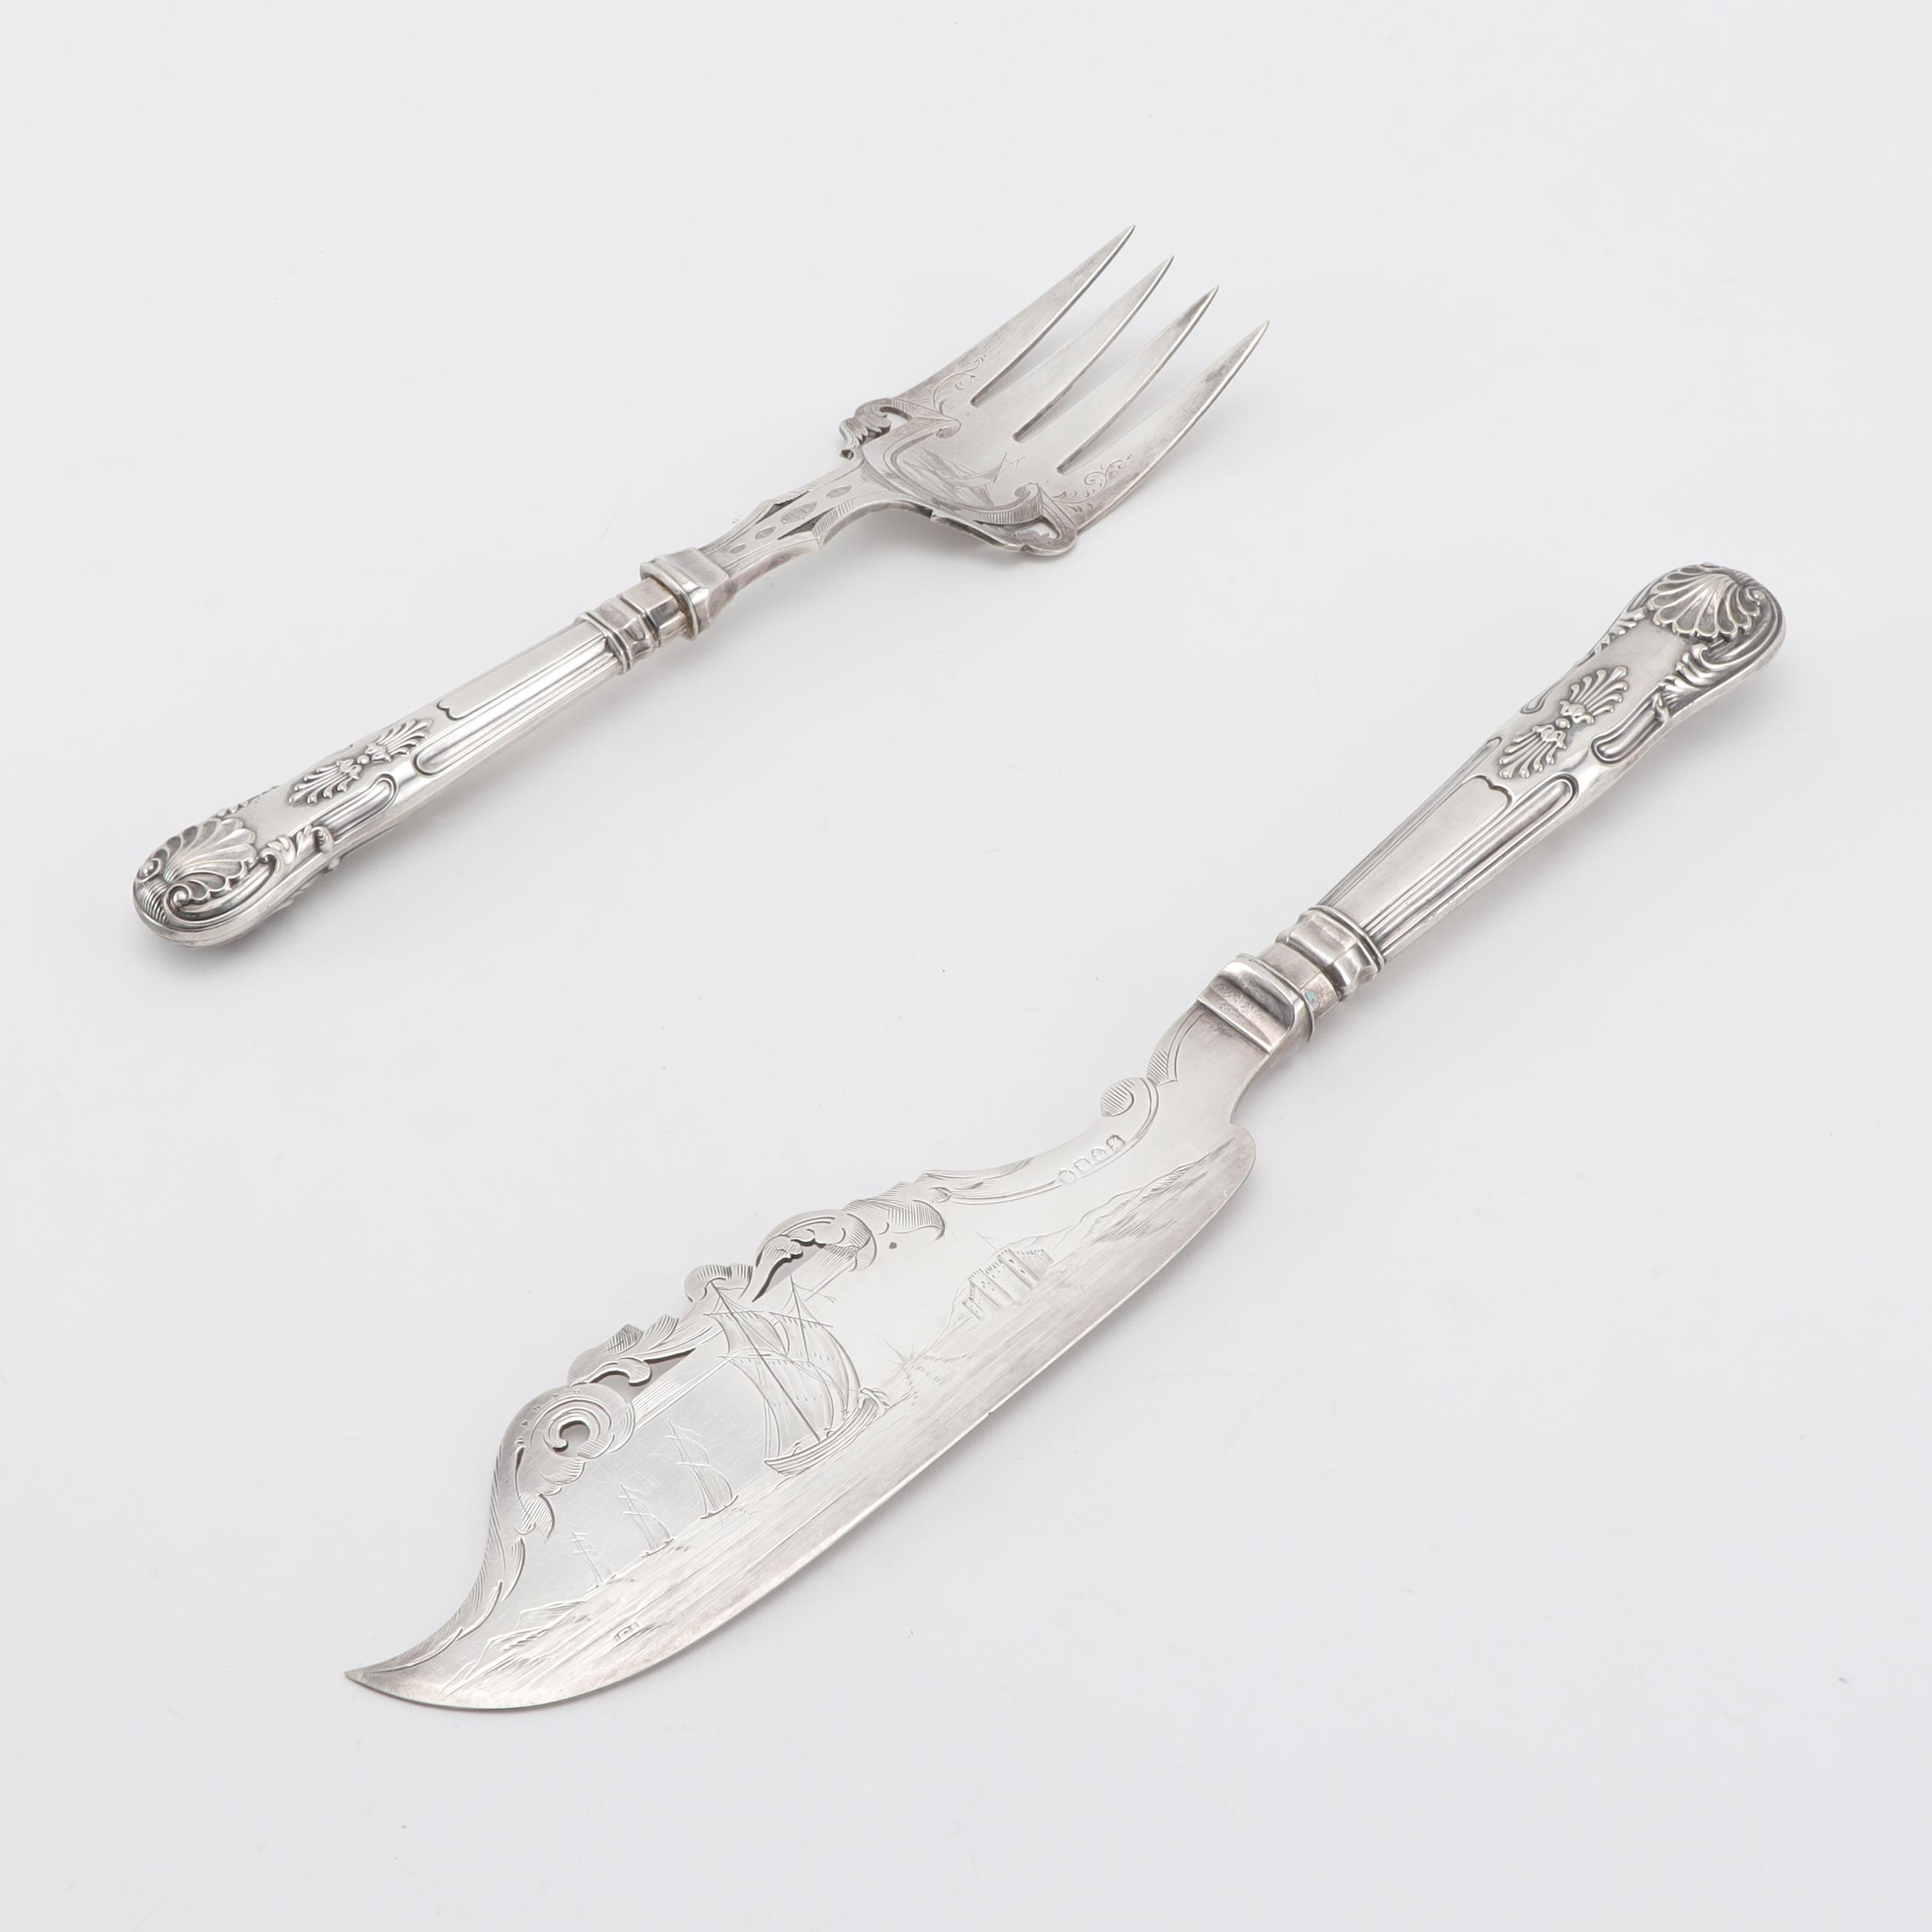 Fish Servers in 800 Silver with Silver Plate Handles